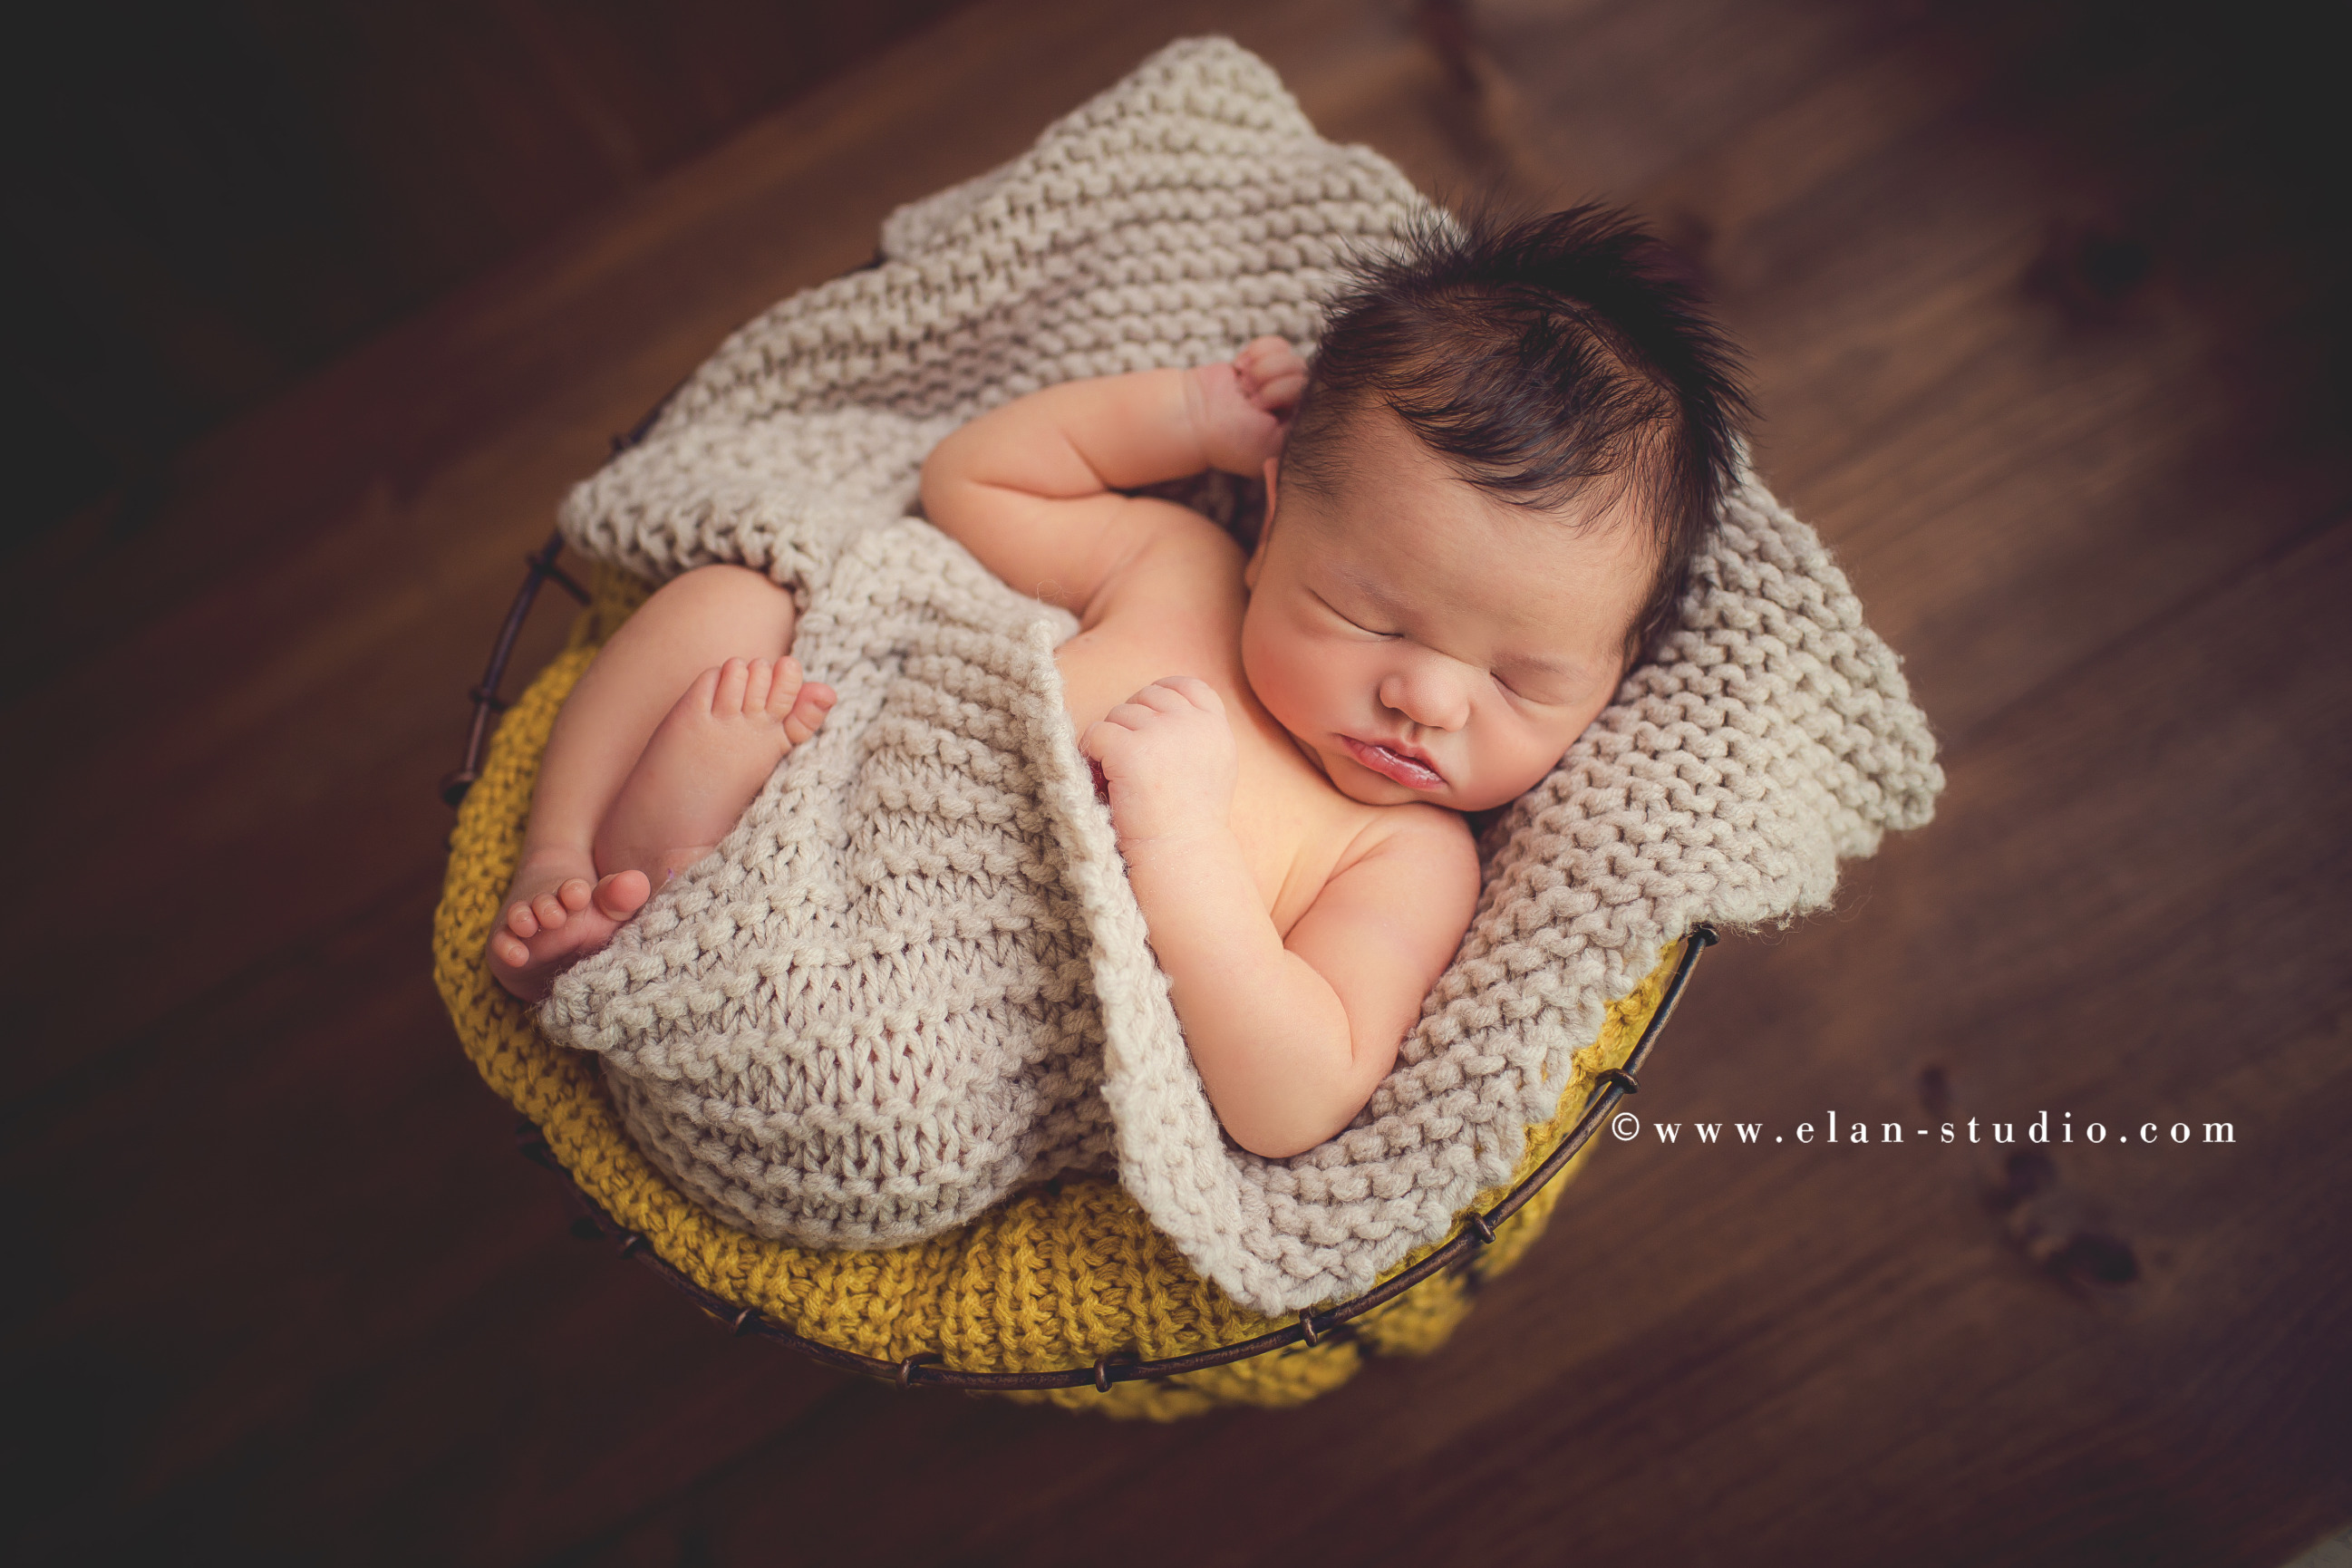 newborn baby with lots of hair, wrapped in oatmeal and mustard, in basket